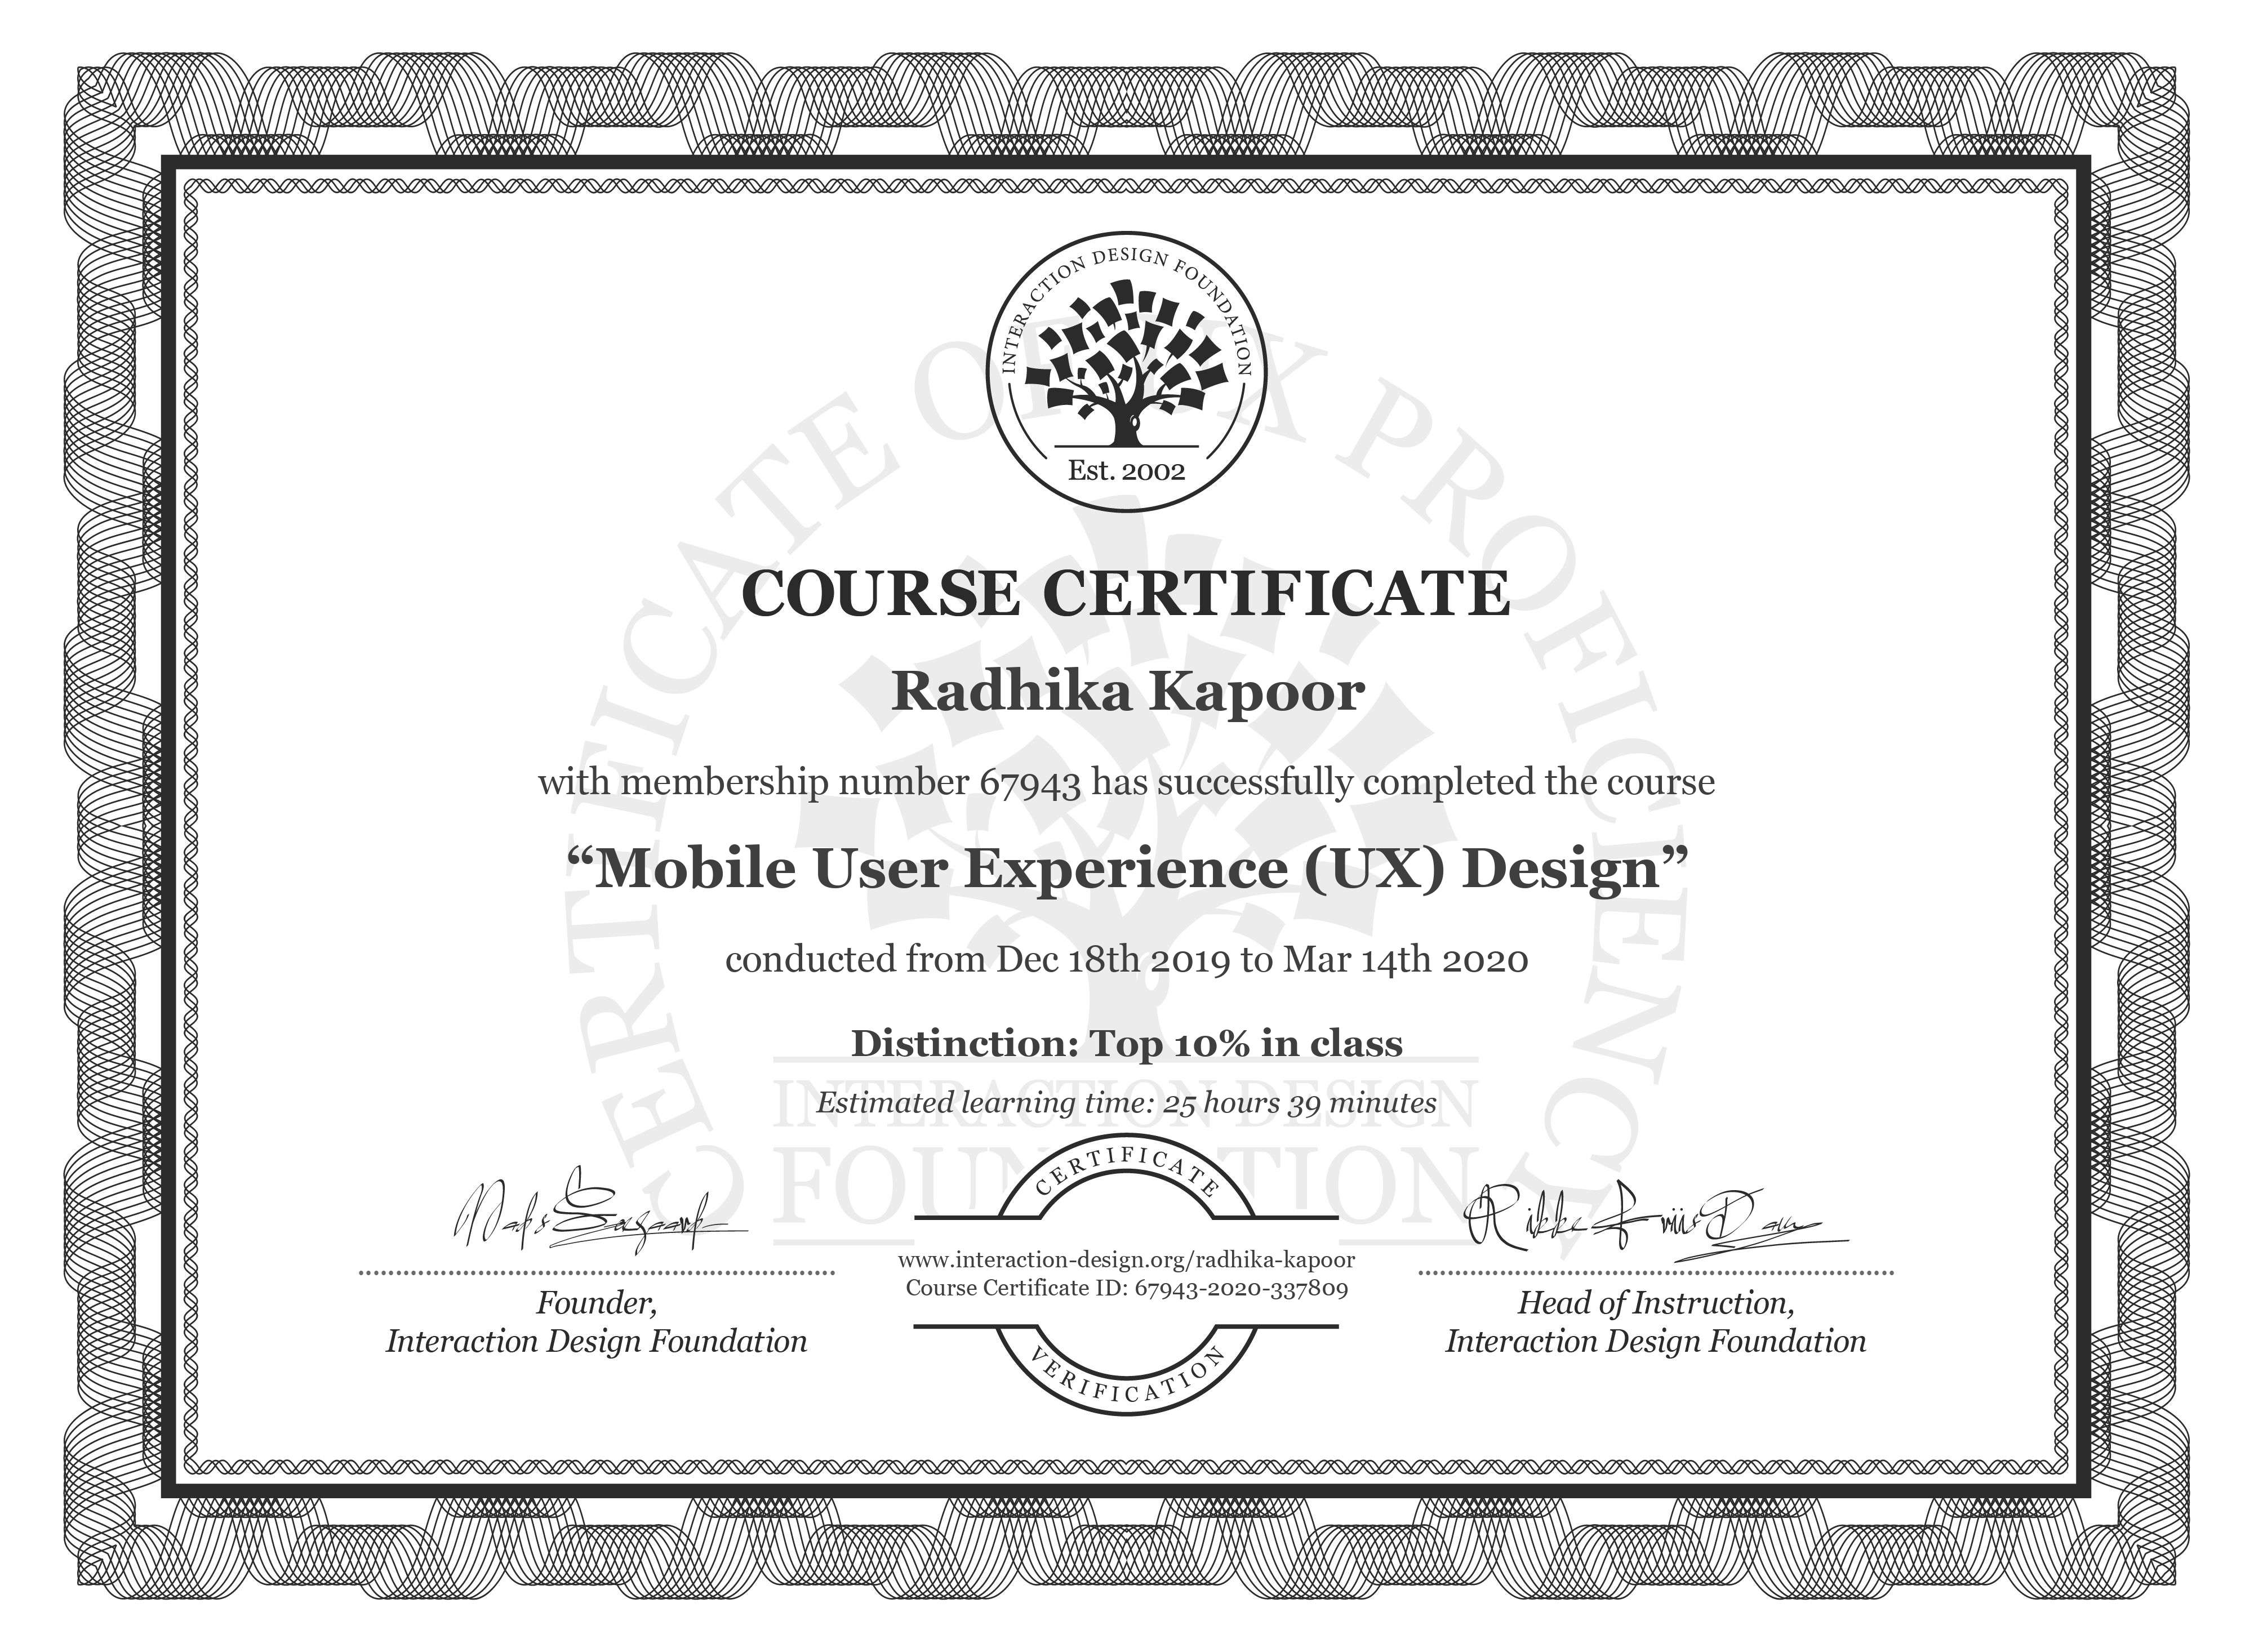 Radhika Kapoor's Course Certificate: Mobile User Experience (UX) Design